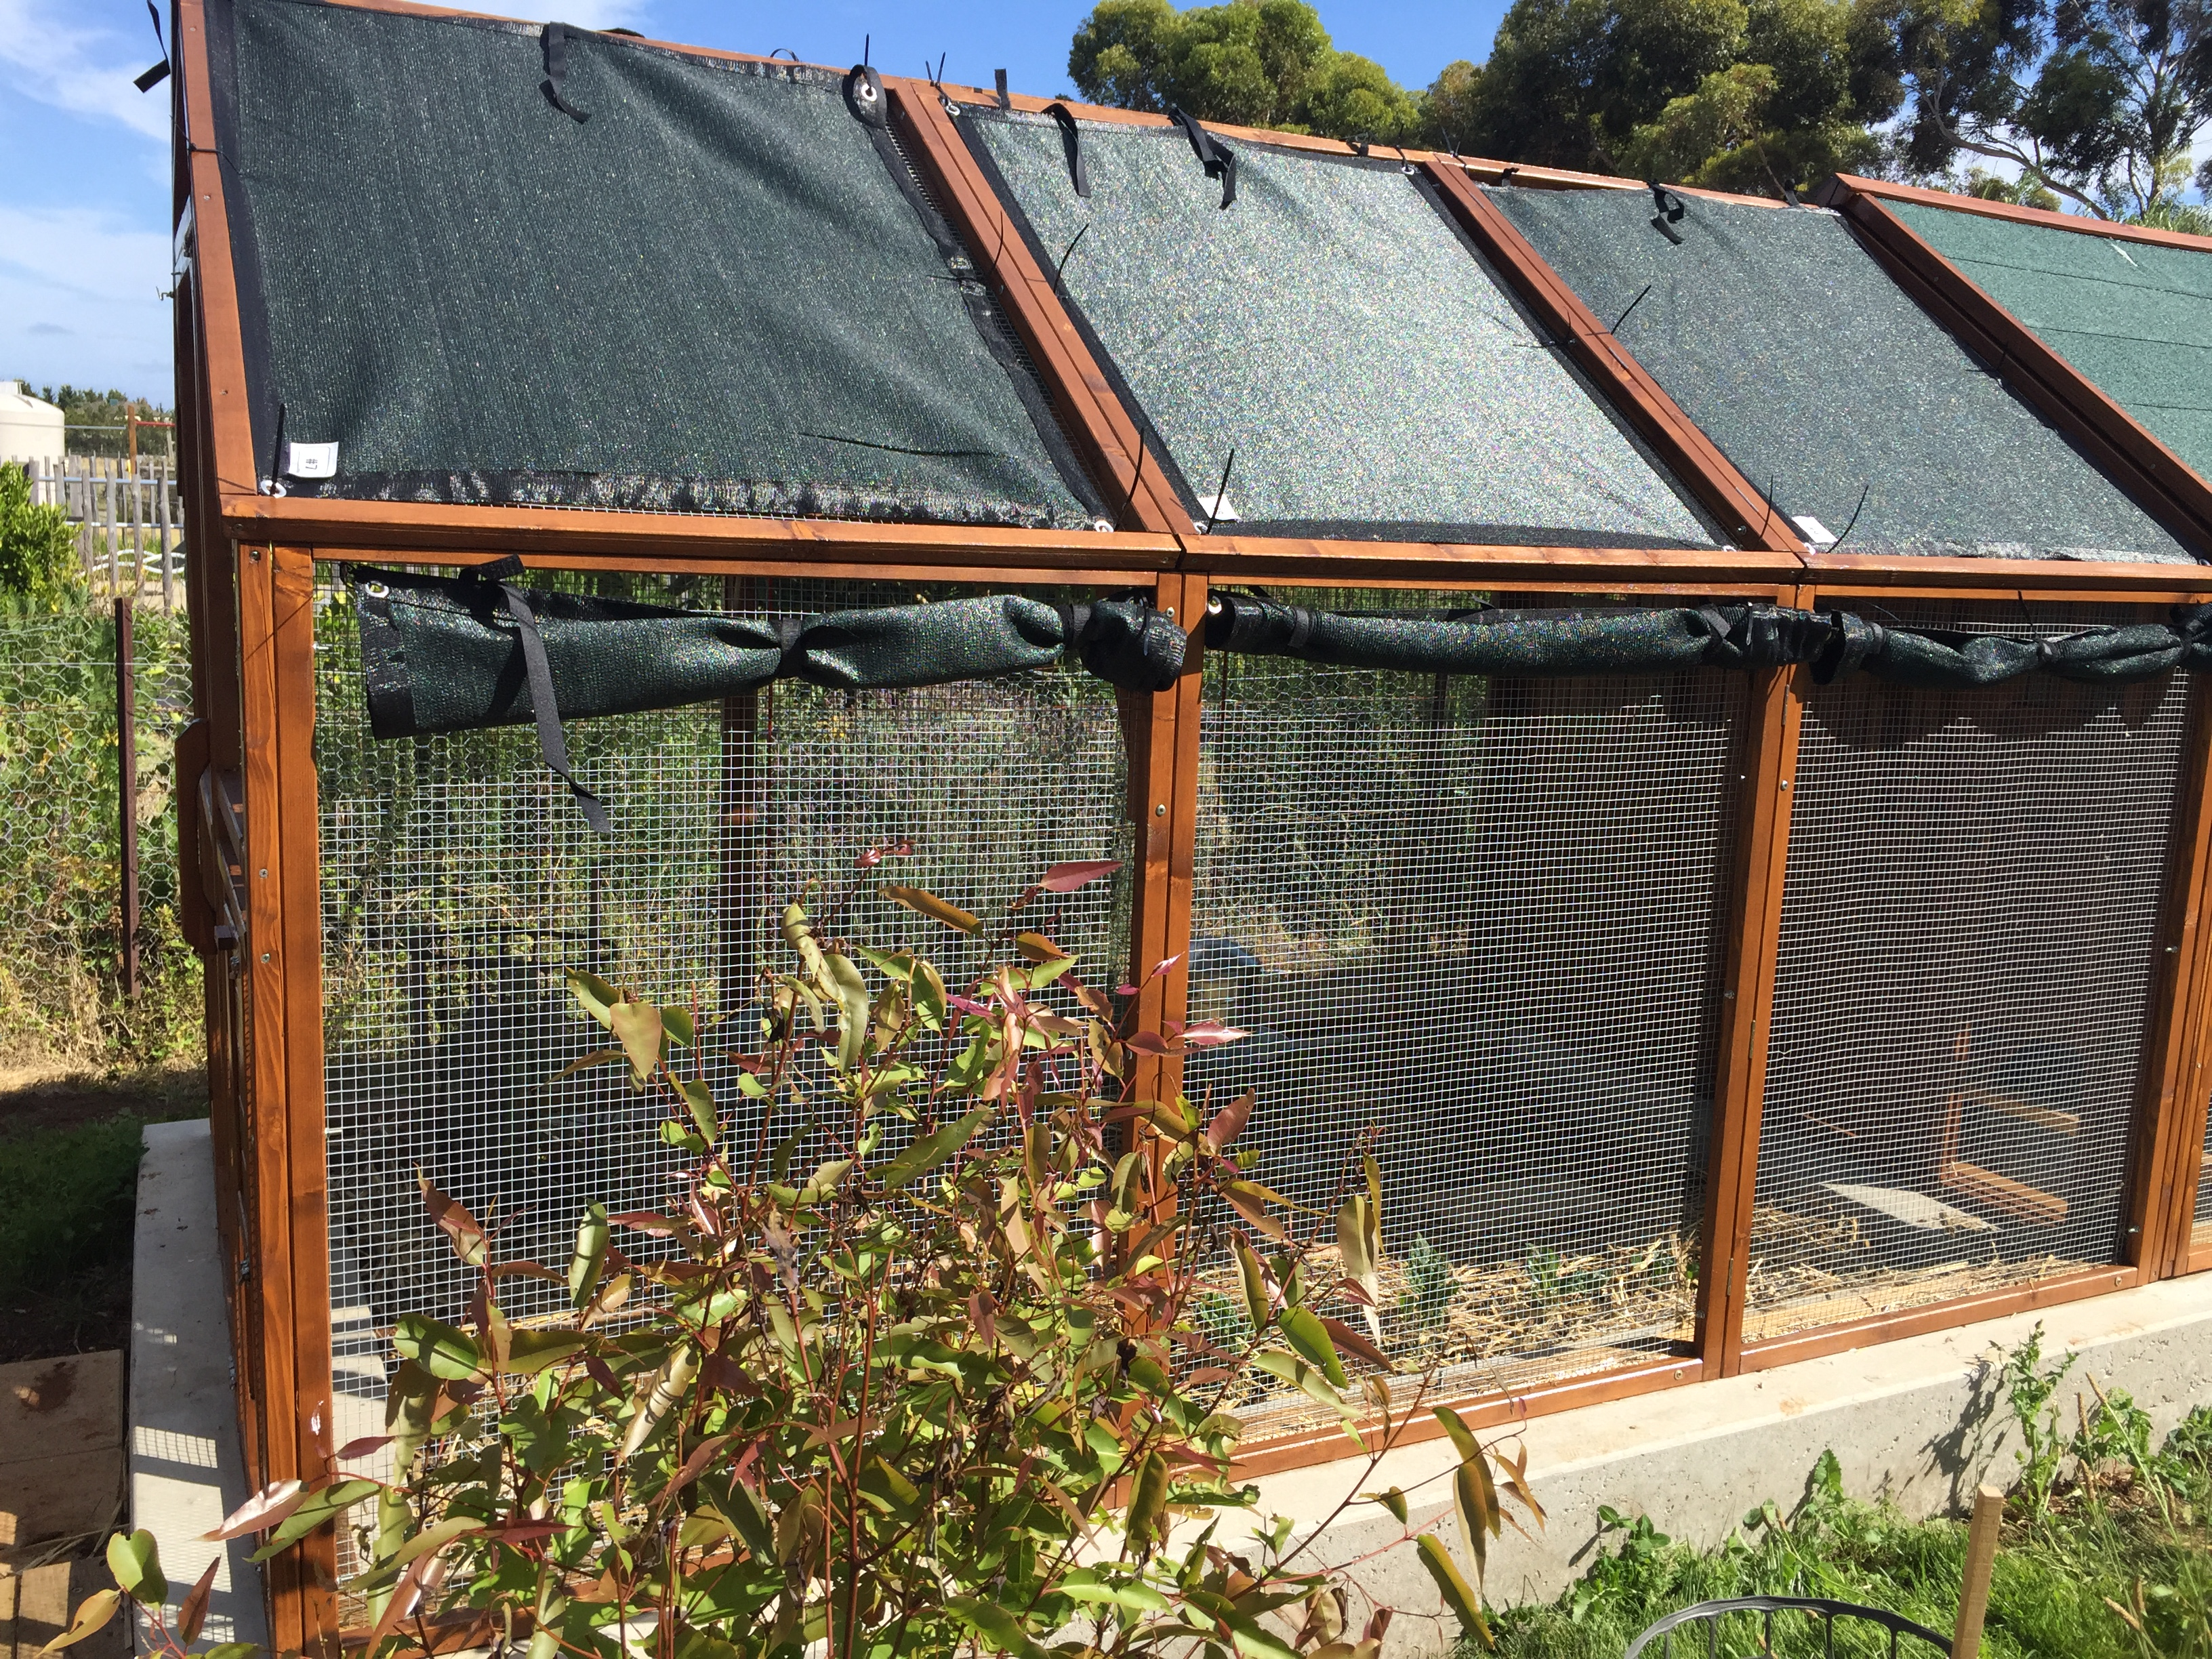 Chooks – coop ready for heat